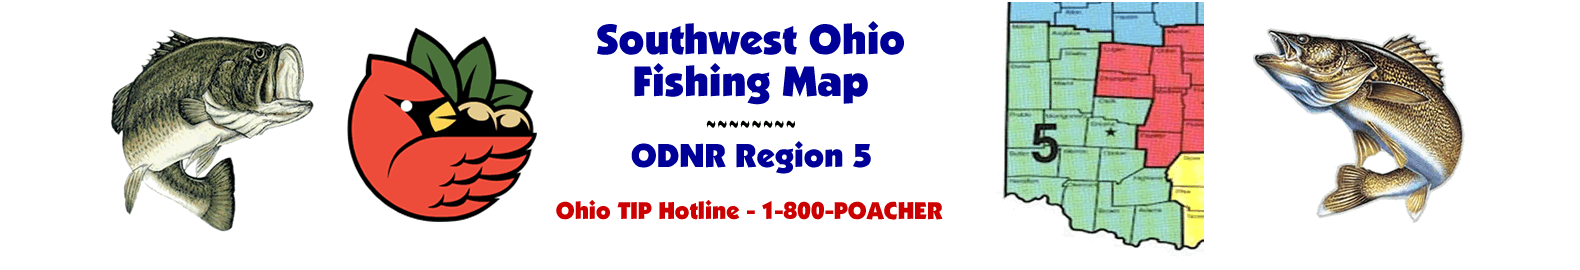 Southwest Ohio - ODNR Region 5